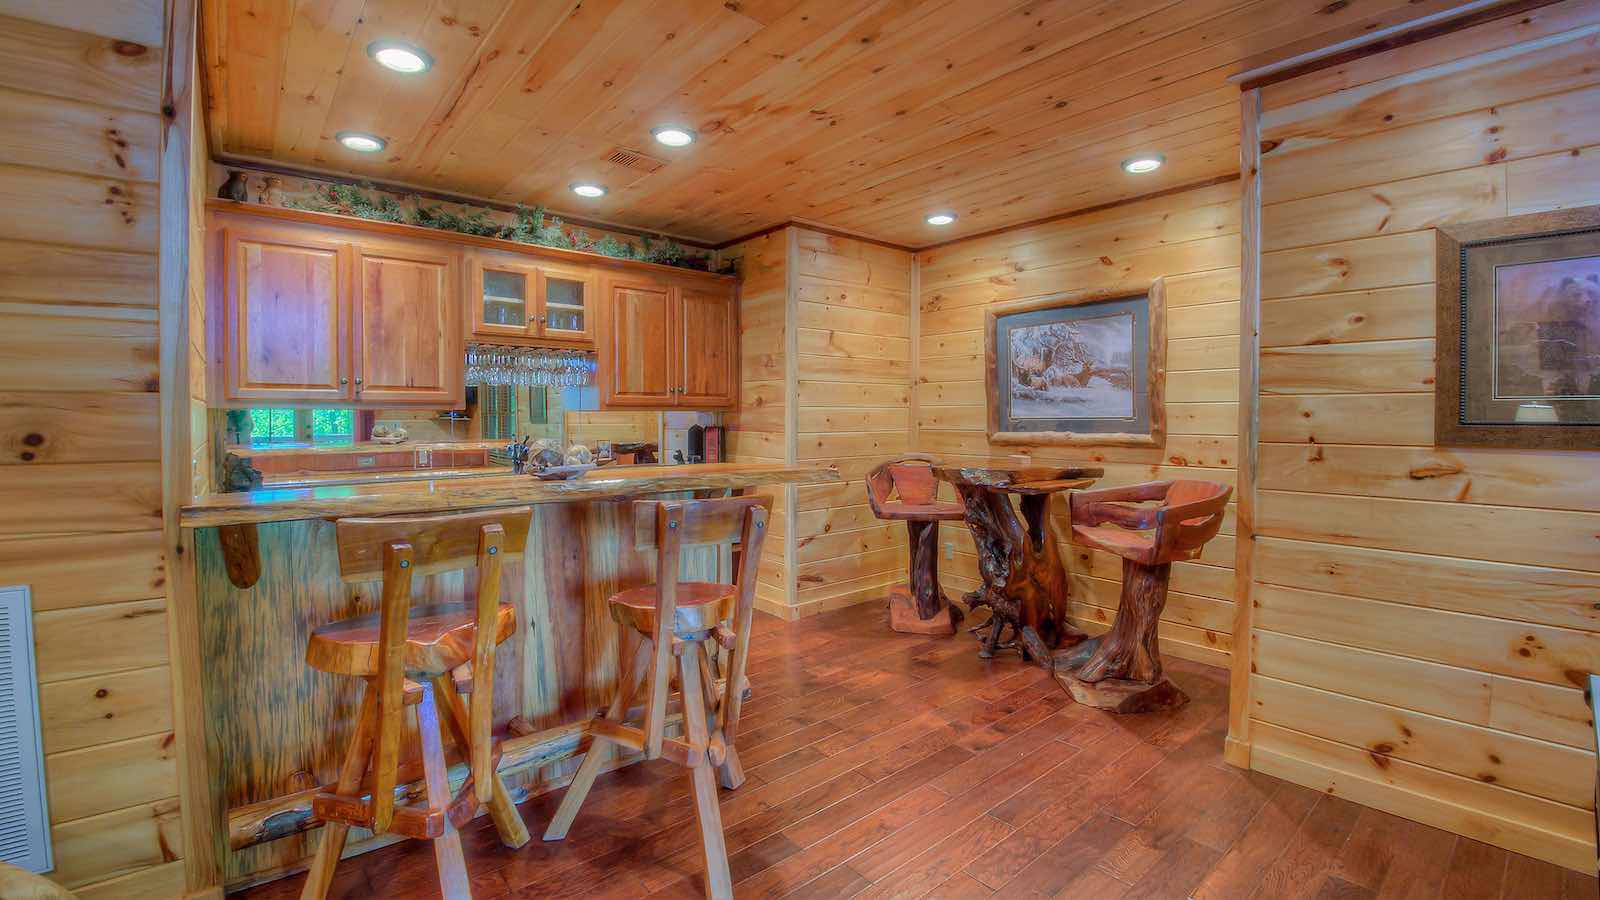 with private pet luxury for outdoor rentals gatlburg owner mountain cabins access mounta gatlinburg rent cab smoky by friendly pool tn indoor log cabin